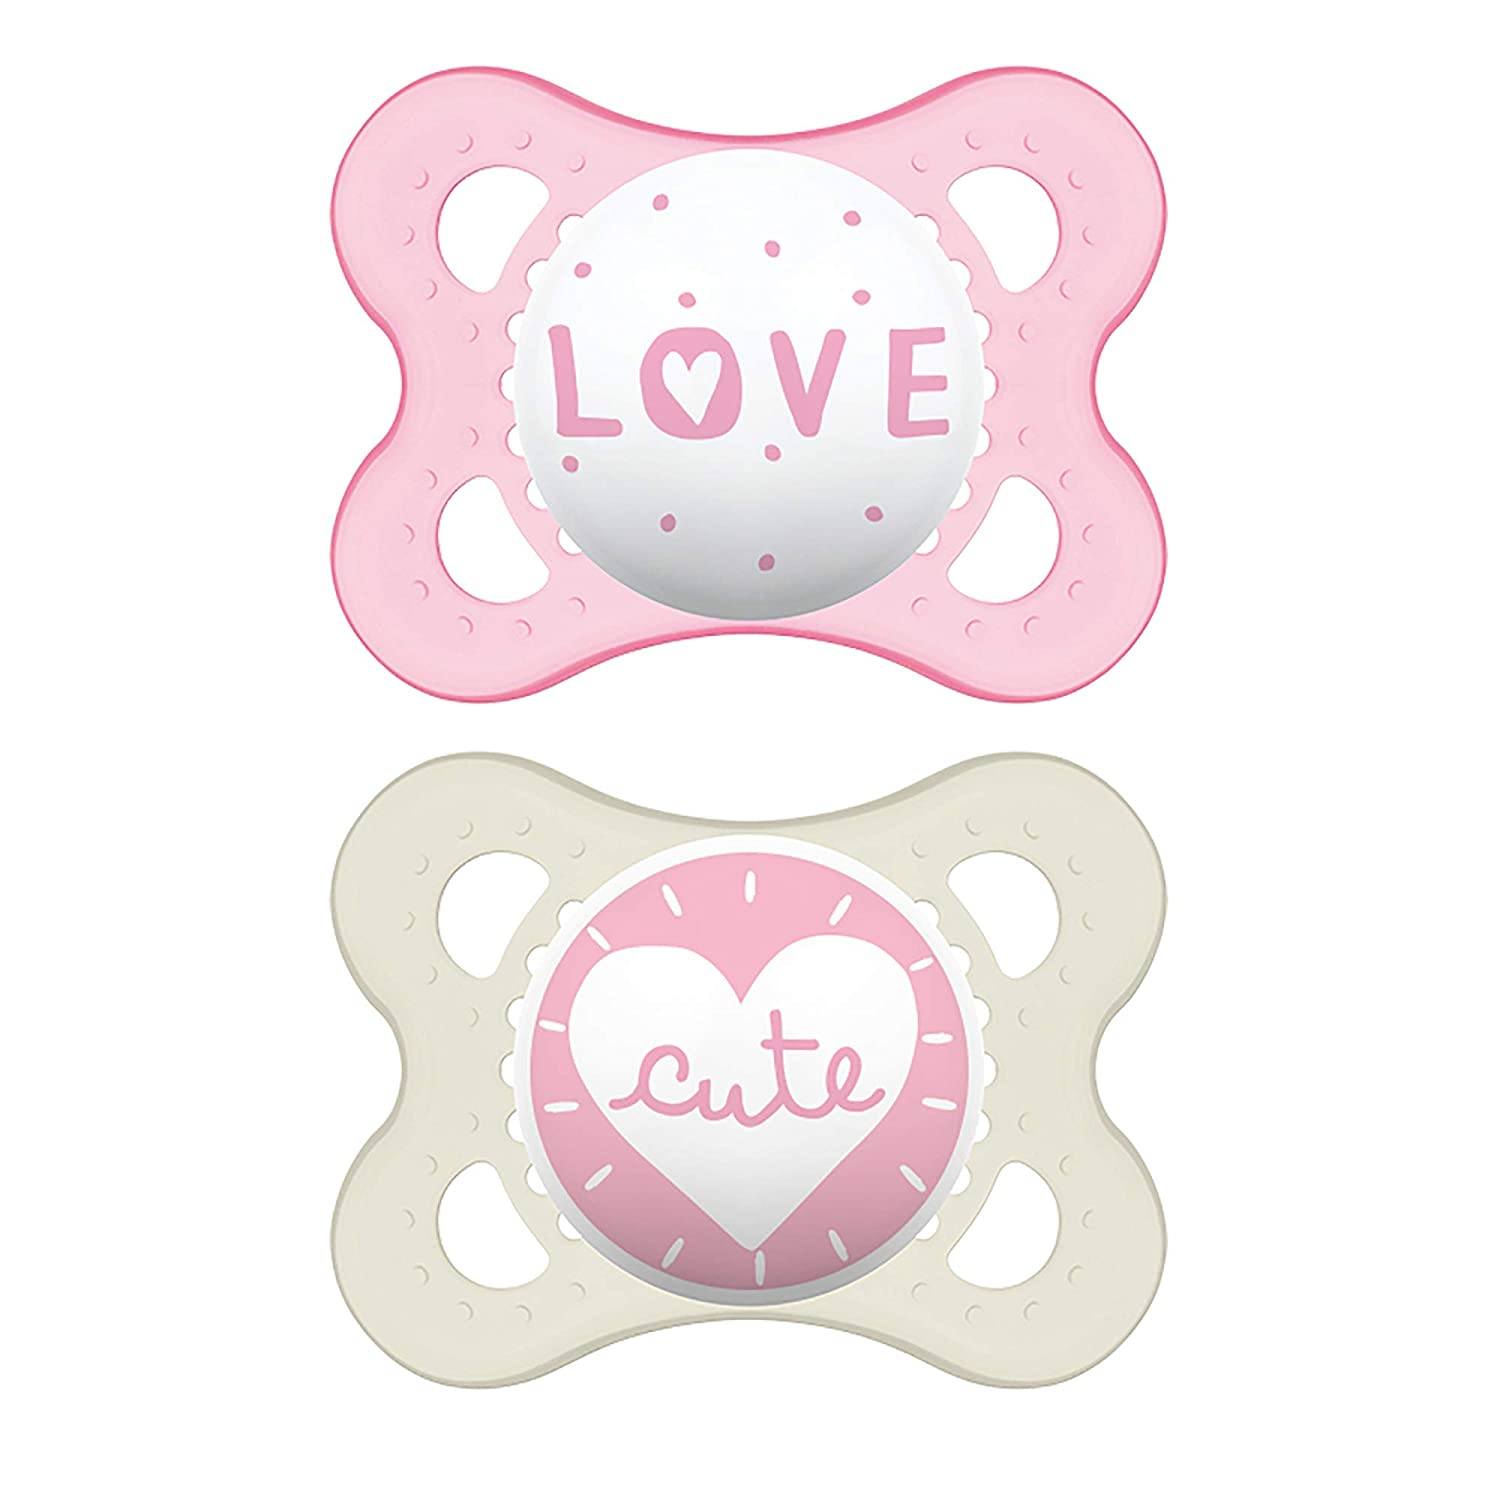 MAM Attitude Collection Pacifiers (2 pack, 1 Sterilizing Pacifier Case), MAM Pacifier 0-6 Months, Baby Girl Pacifier, Best Pacifier for Breastfed Babies, Designs May Vary